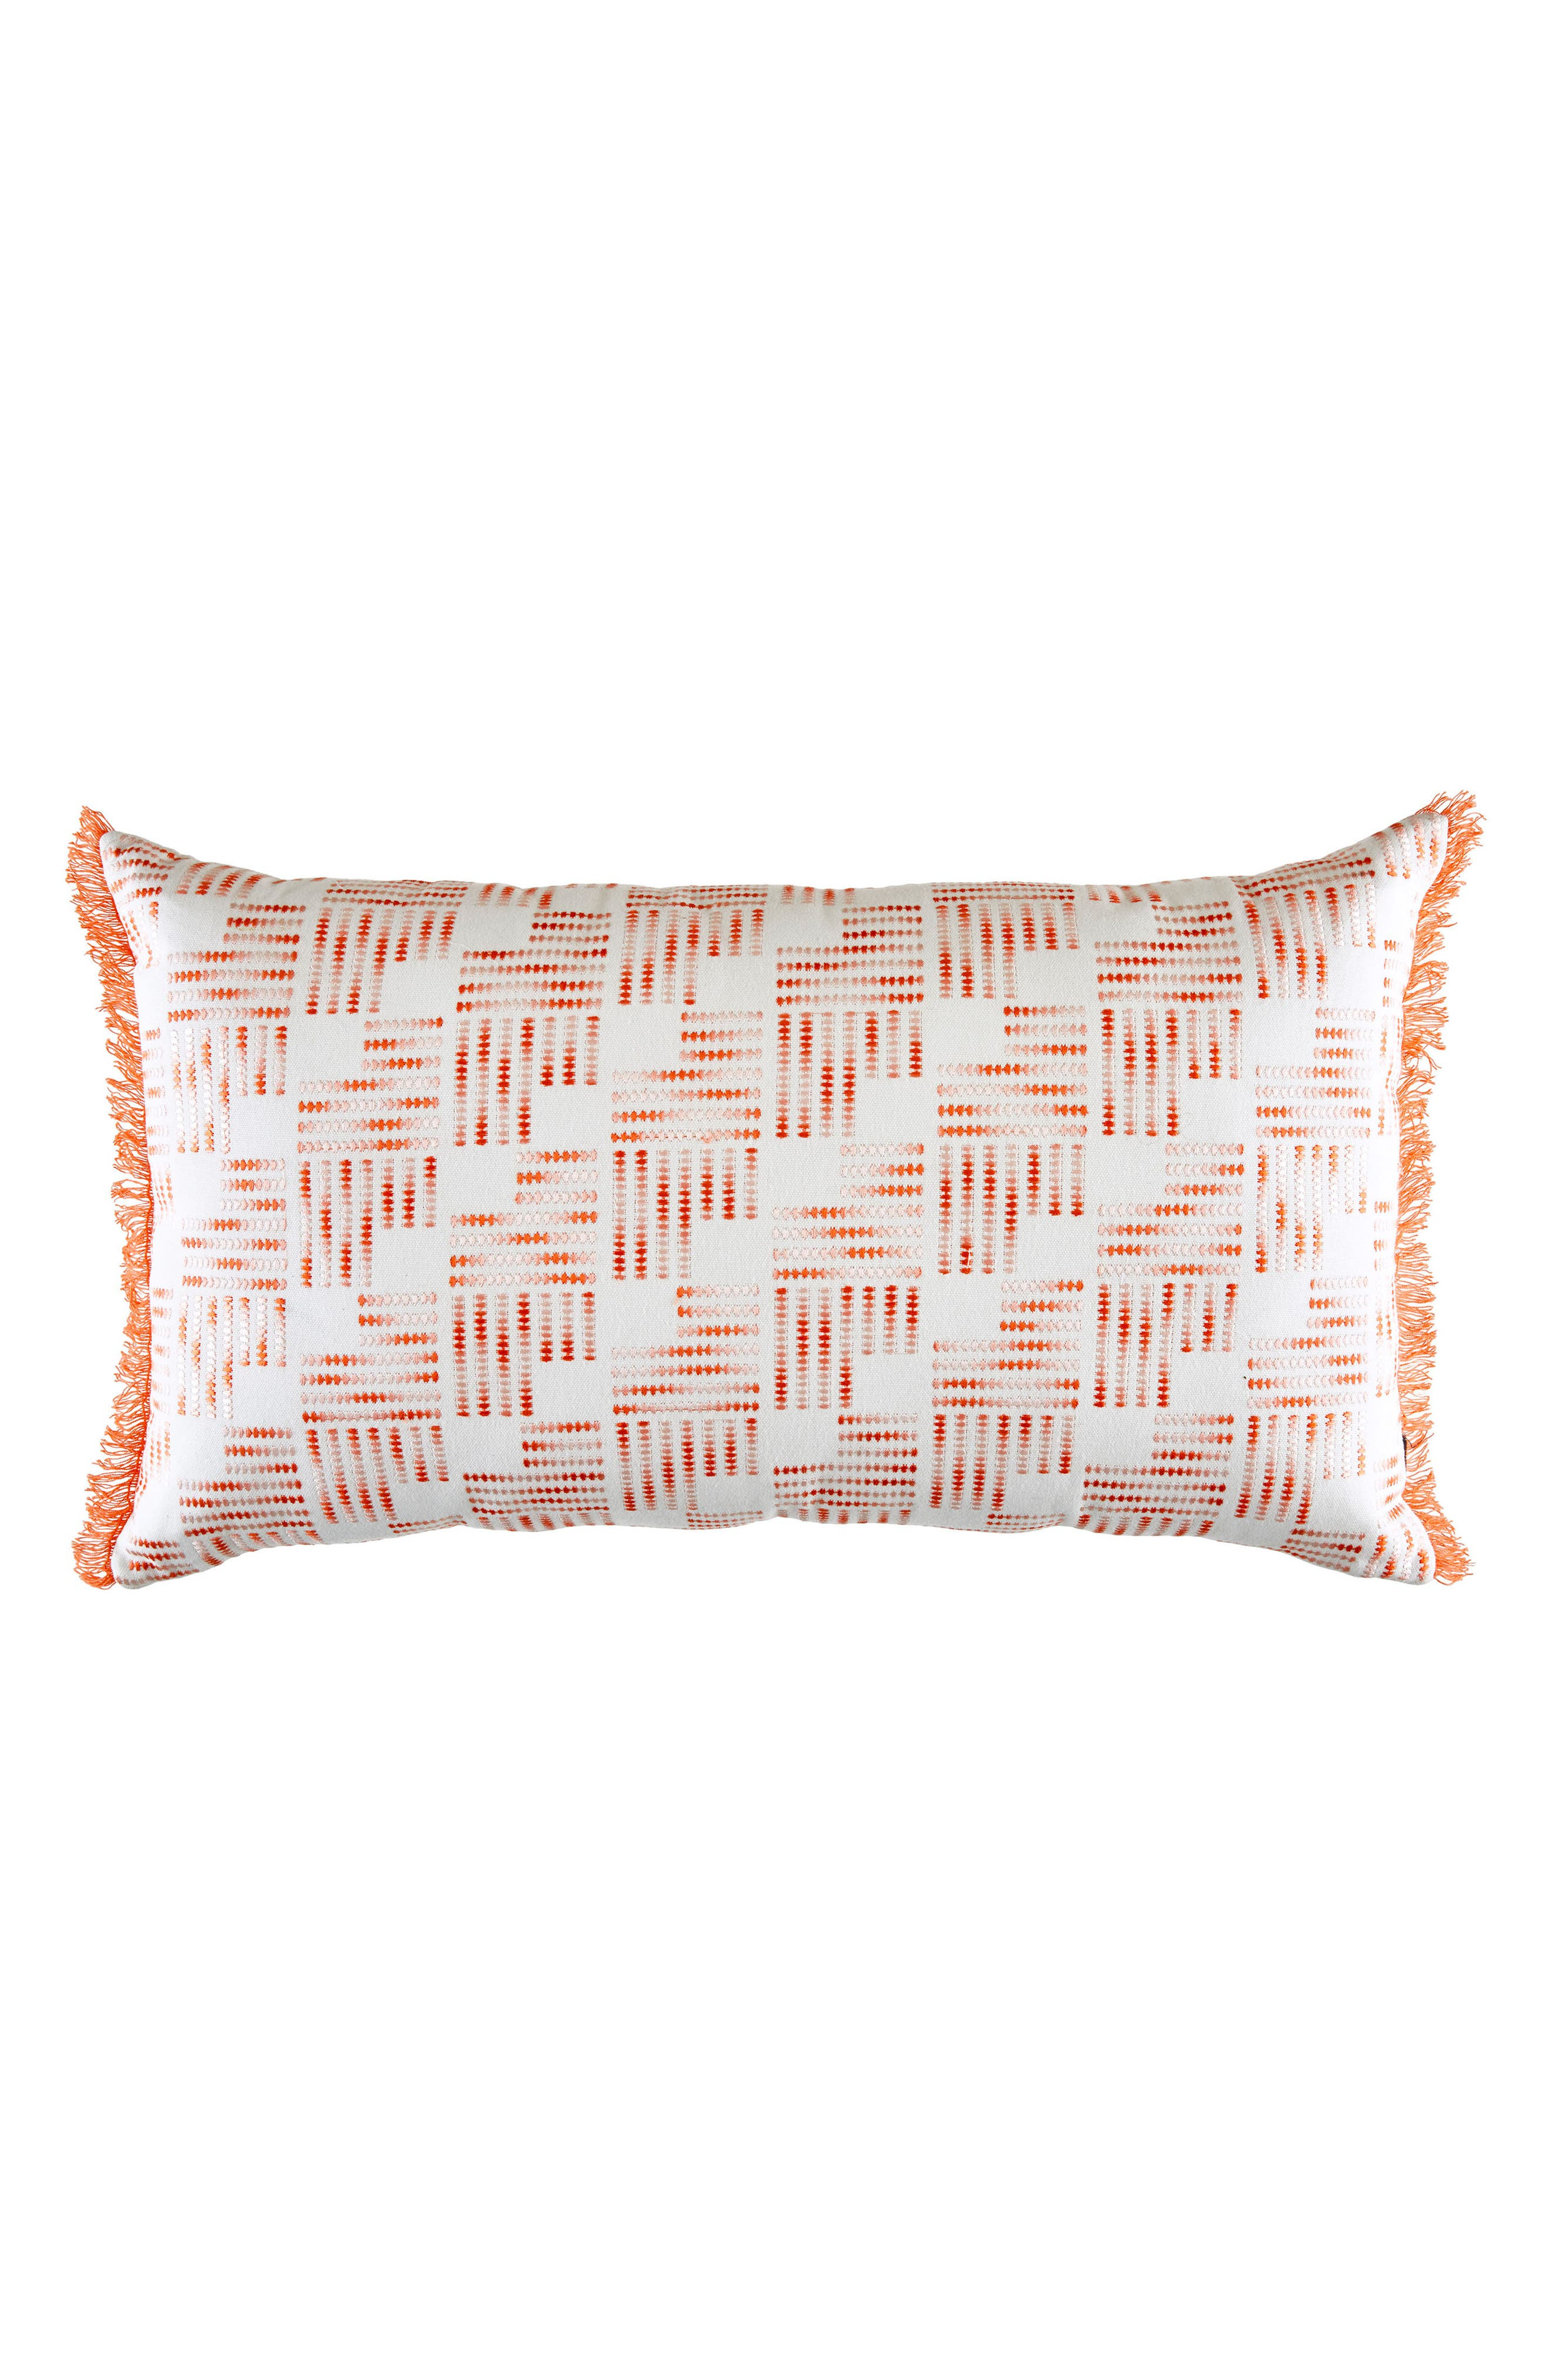 Embroidered Fringe Accent Pillow,                             Main thumbnail 1, color,                             680